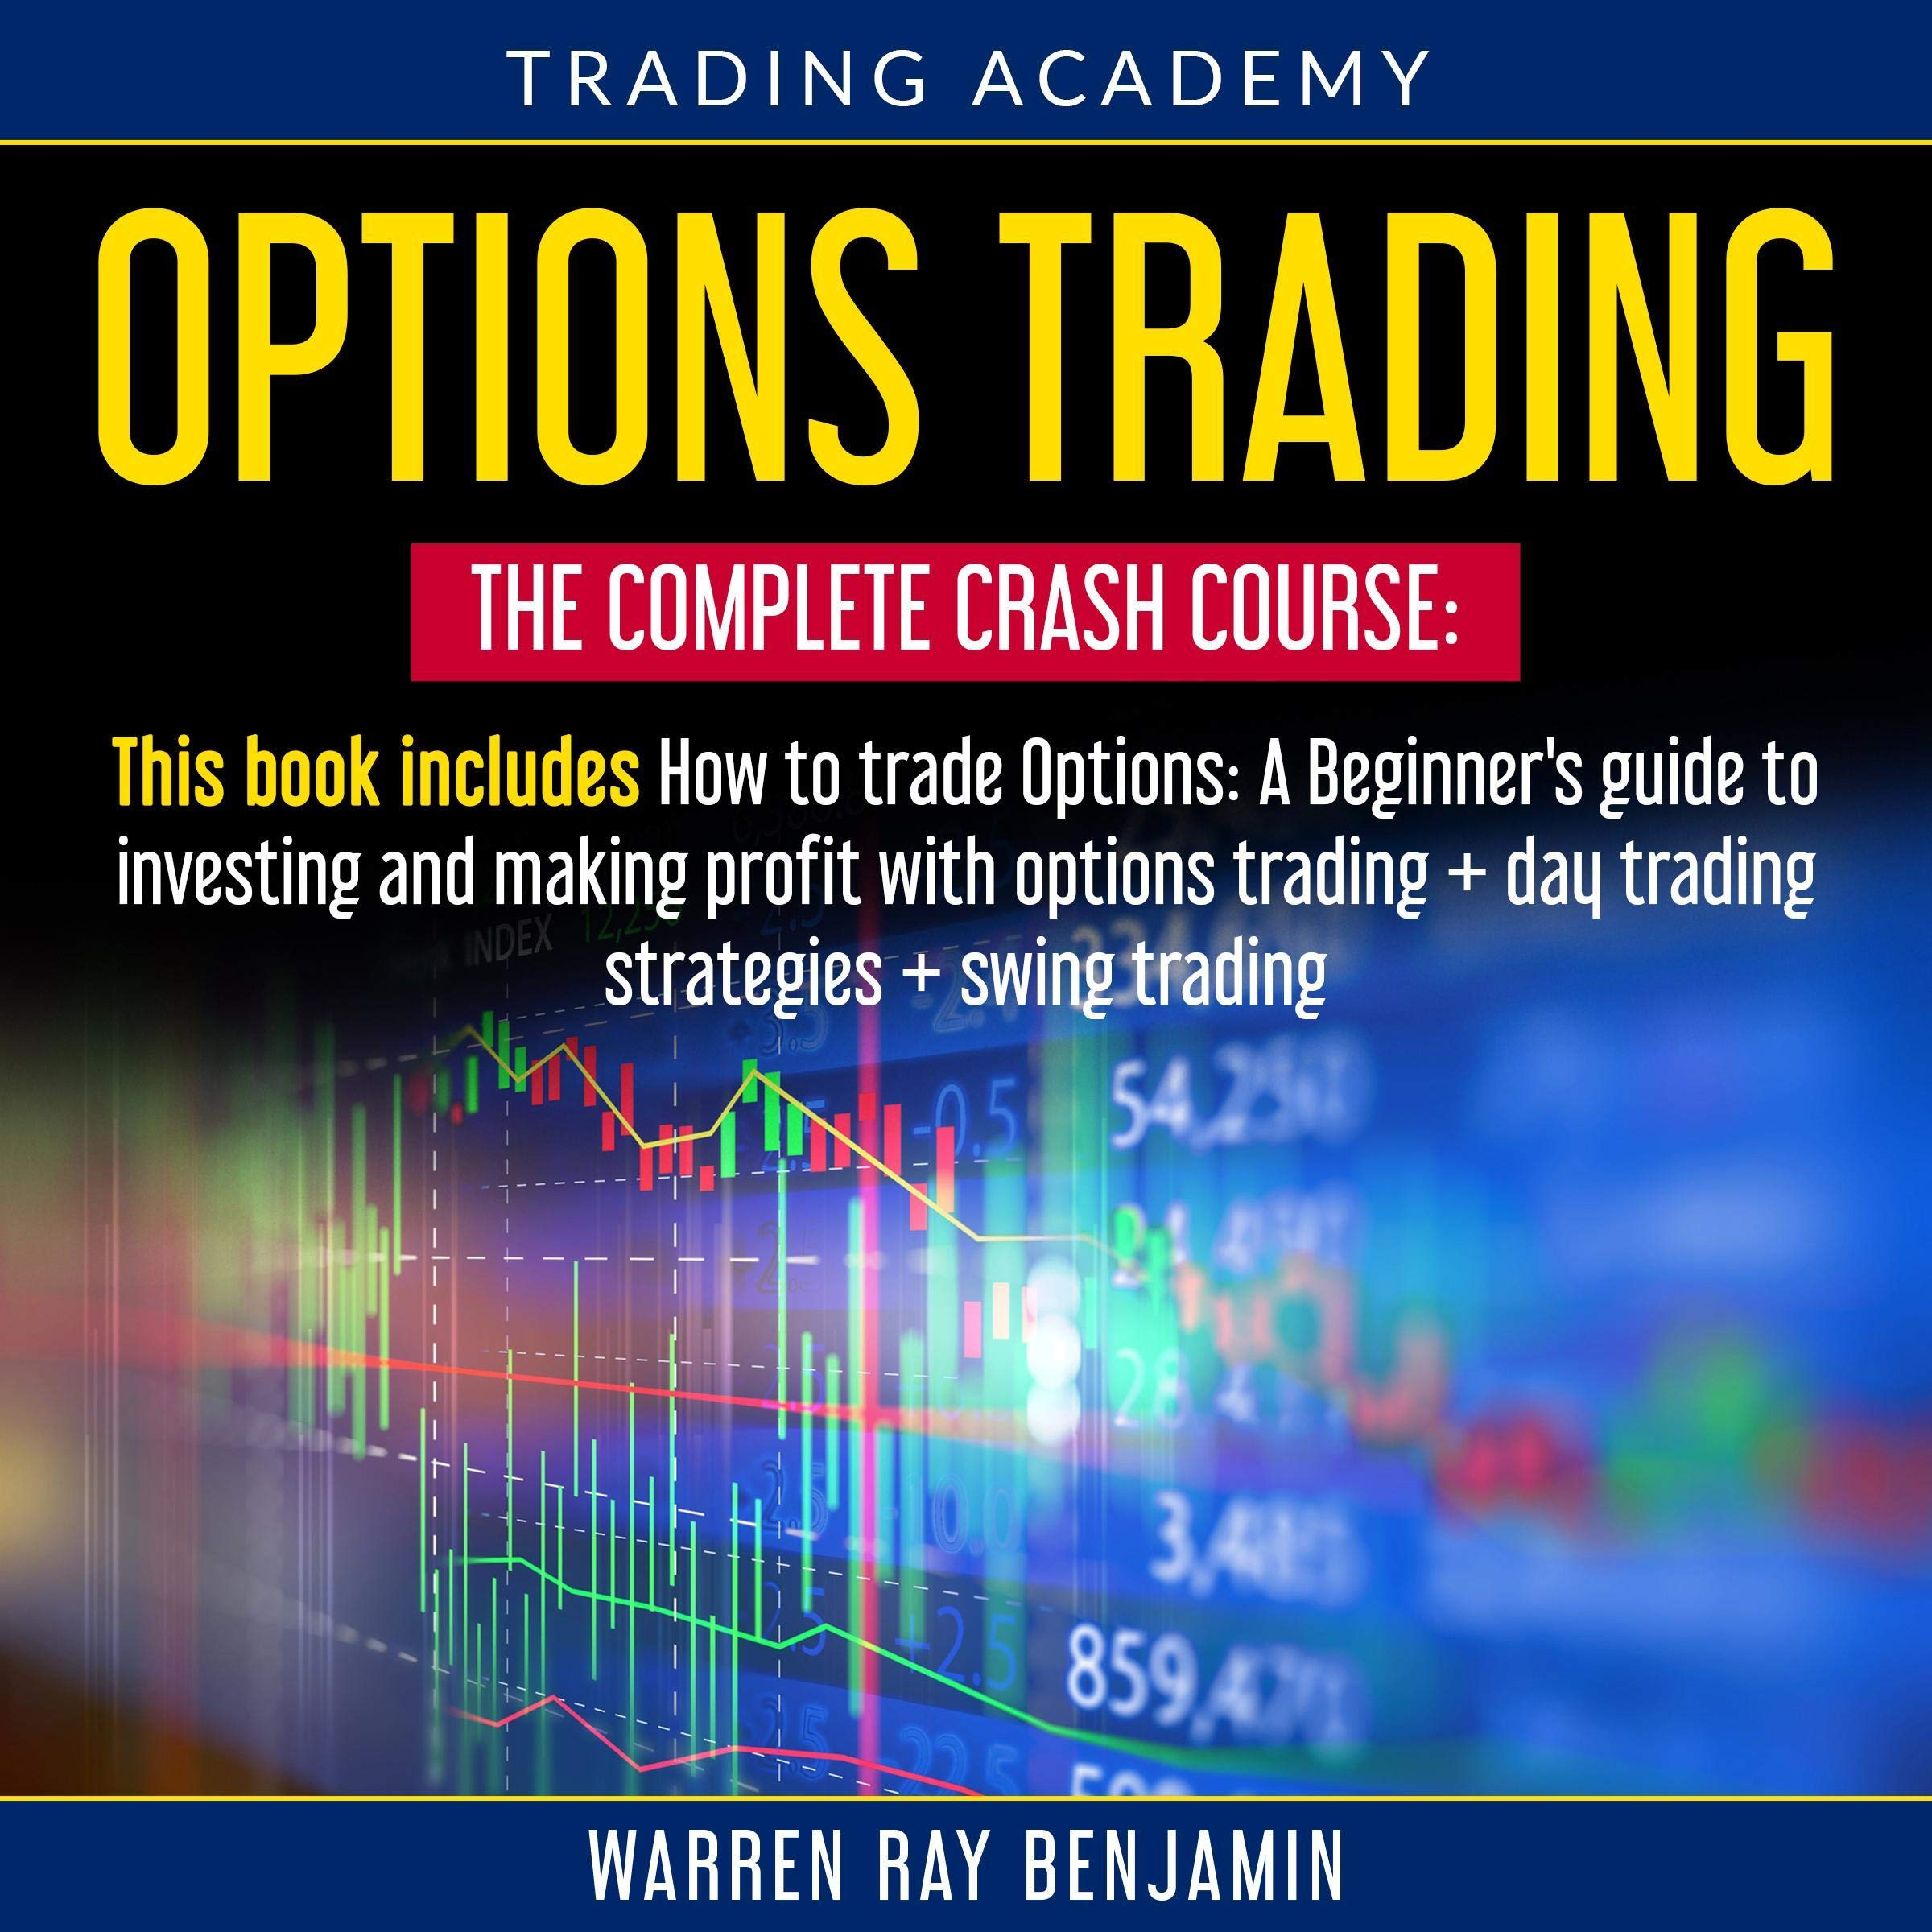 Download Options Trading - The Complete Crash Course: 3 Books In 1: How To Trade Options: A Beginners's Guide To Investing And Maki... 